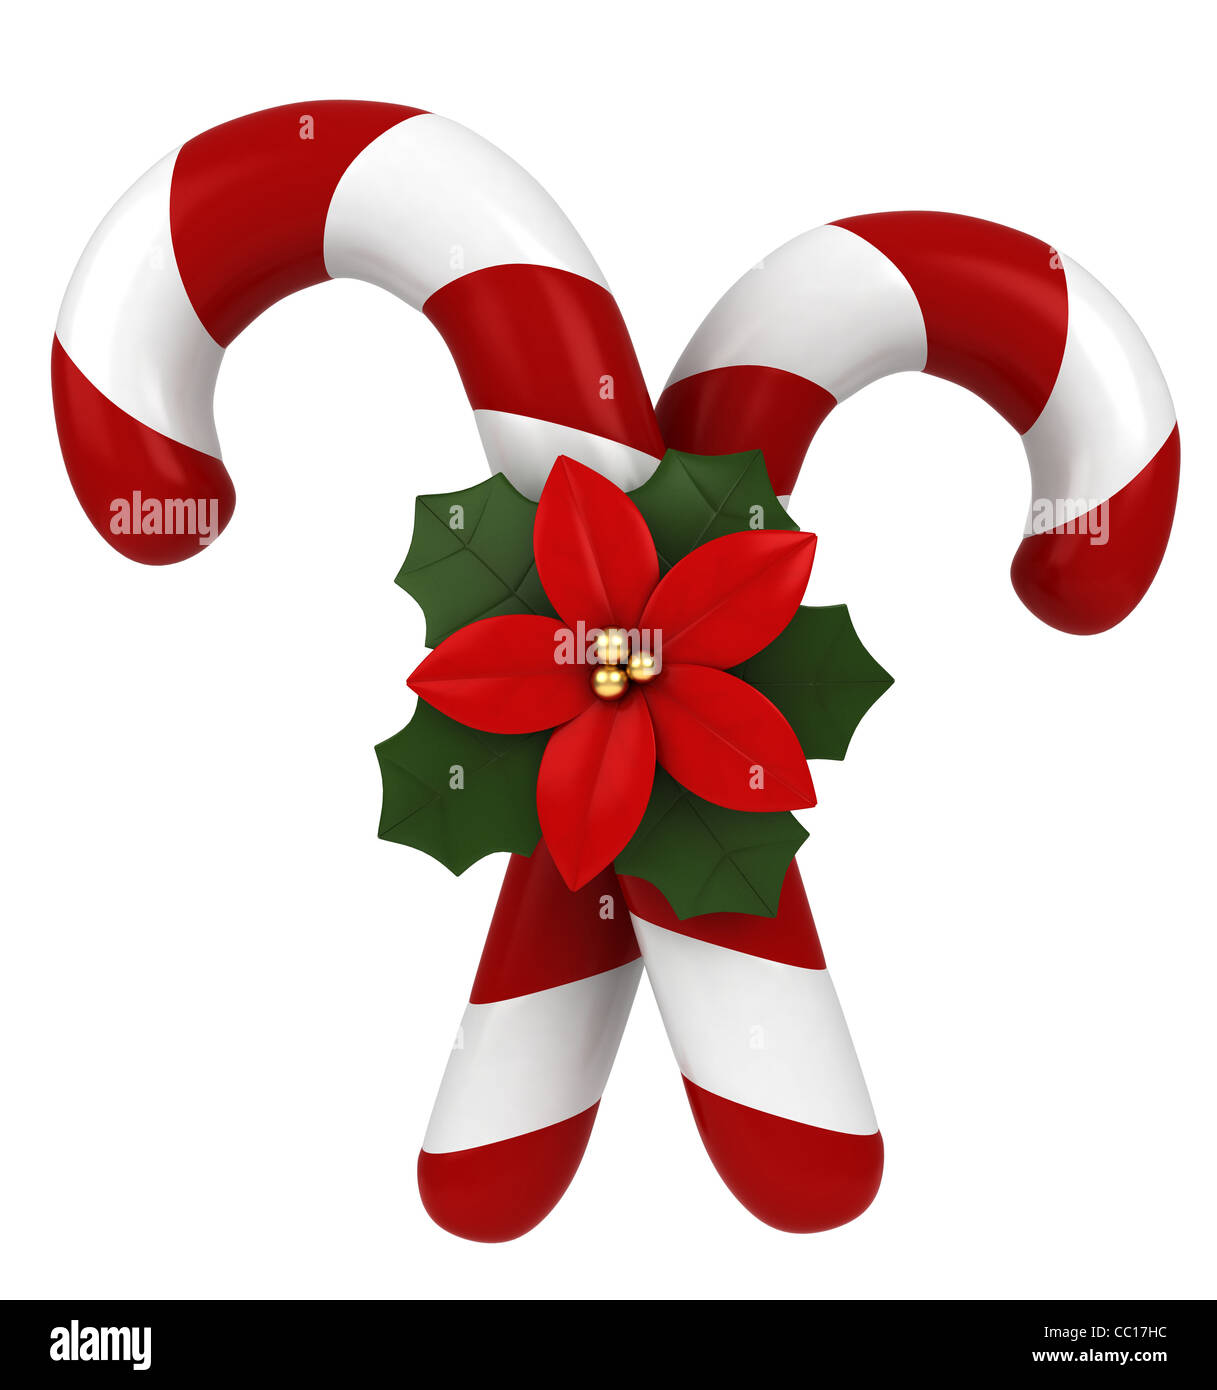 3d-illustration-of-candy-canes-tied-together-by-a-poinsettia-CC17HC.jpg